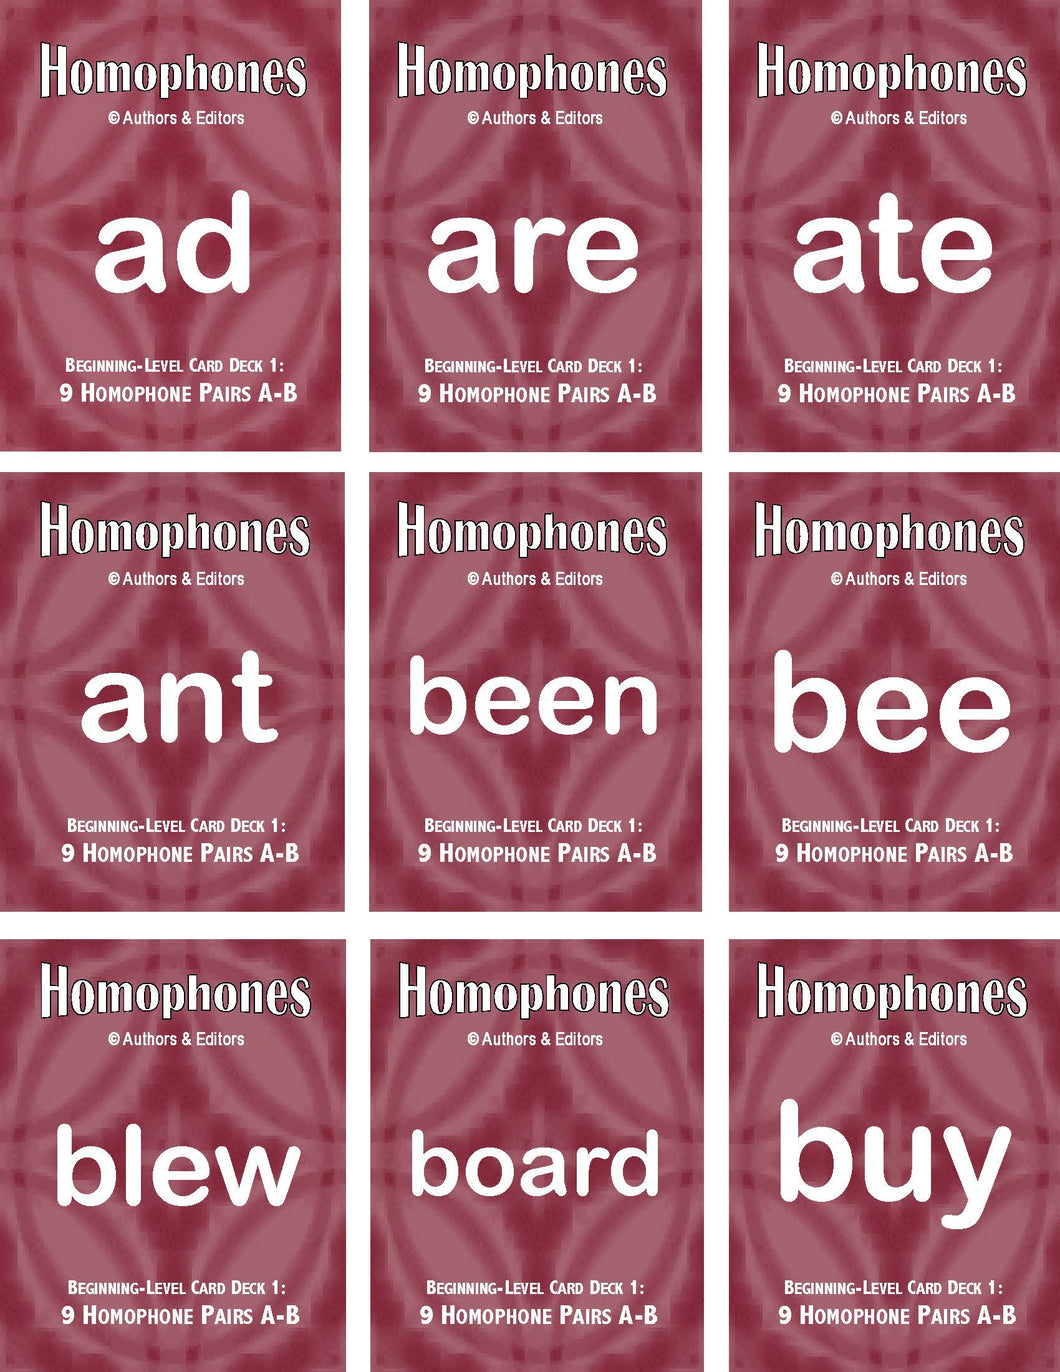 C-05.4.1 Get & Use Six 9-Pair Beginning Homophones Card Decks